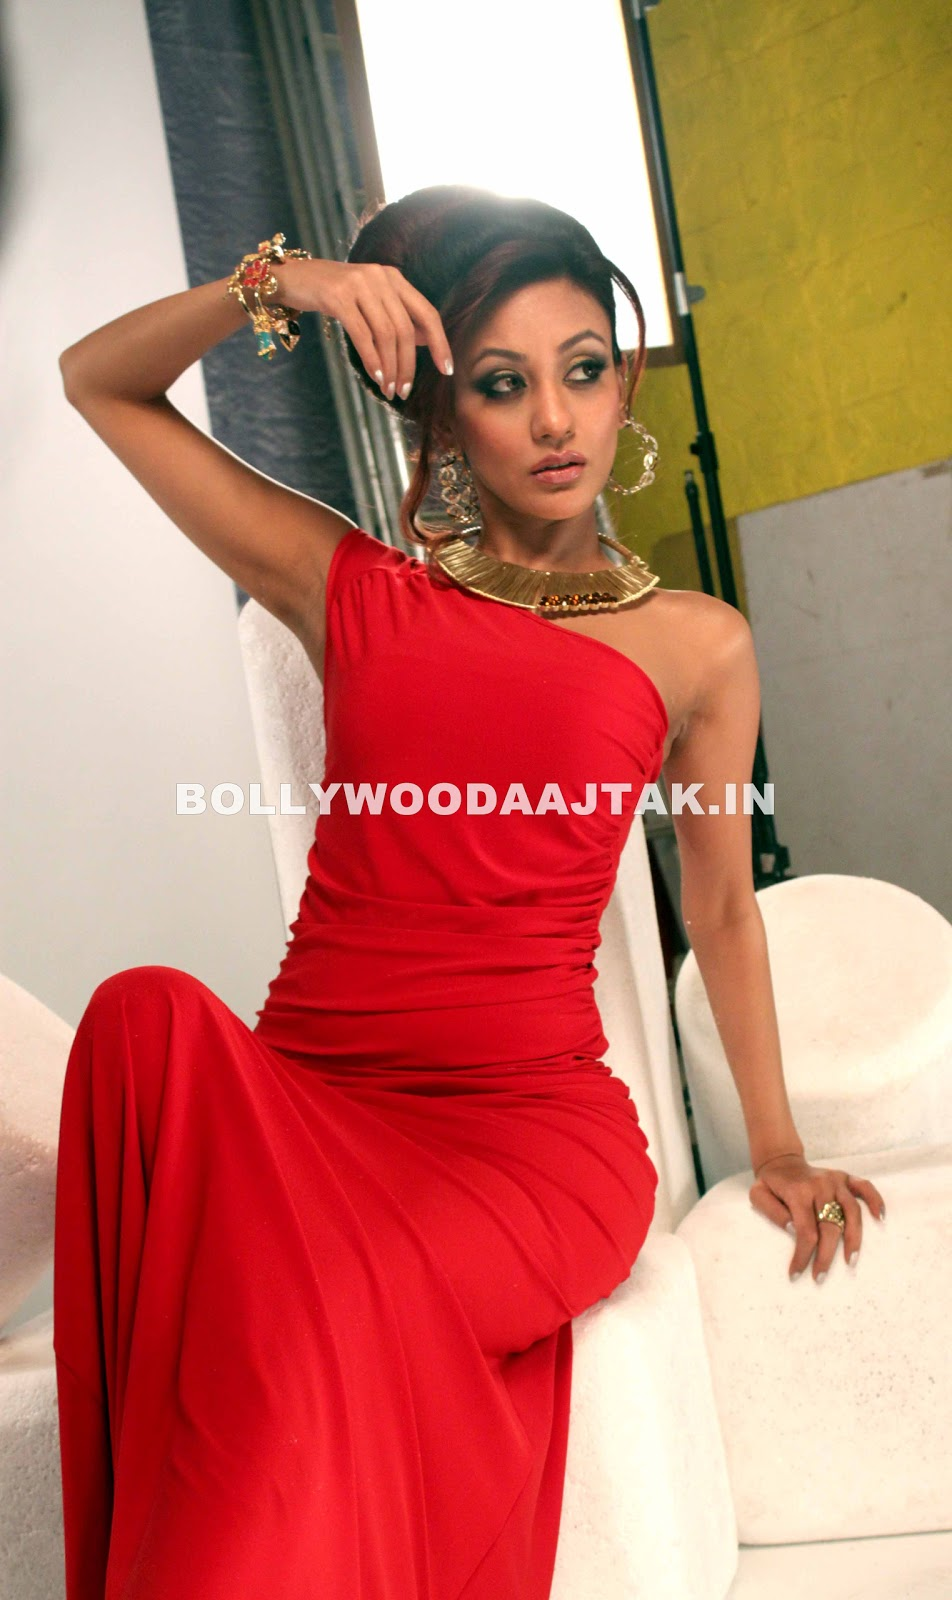 Vedita in off shoulder red gown pic -  Vedita Pratap Singh Hot Photoshoot pics